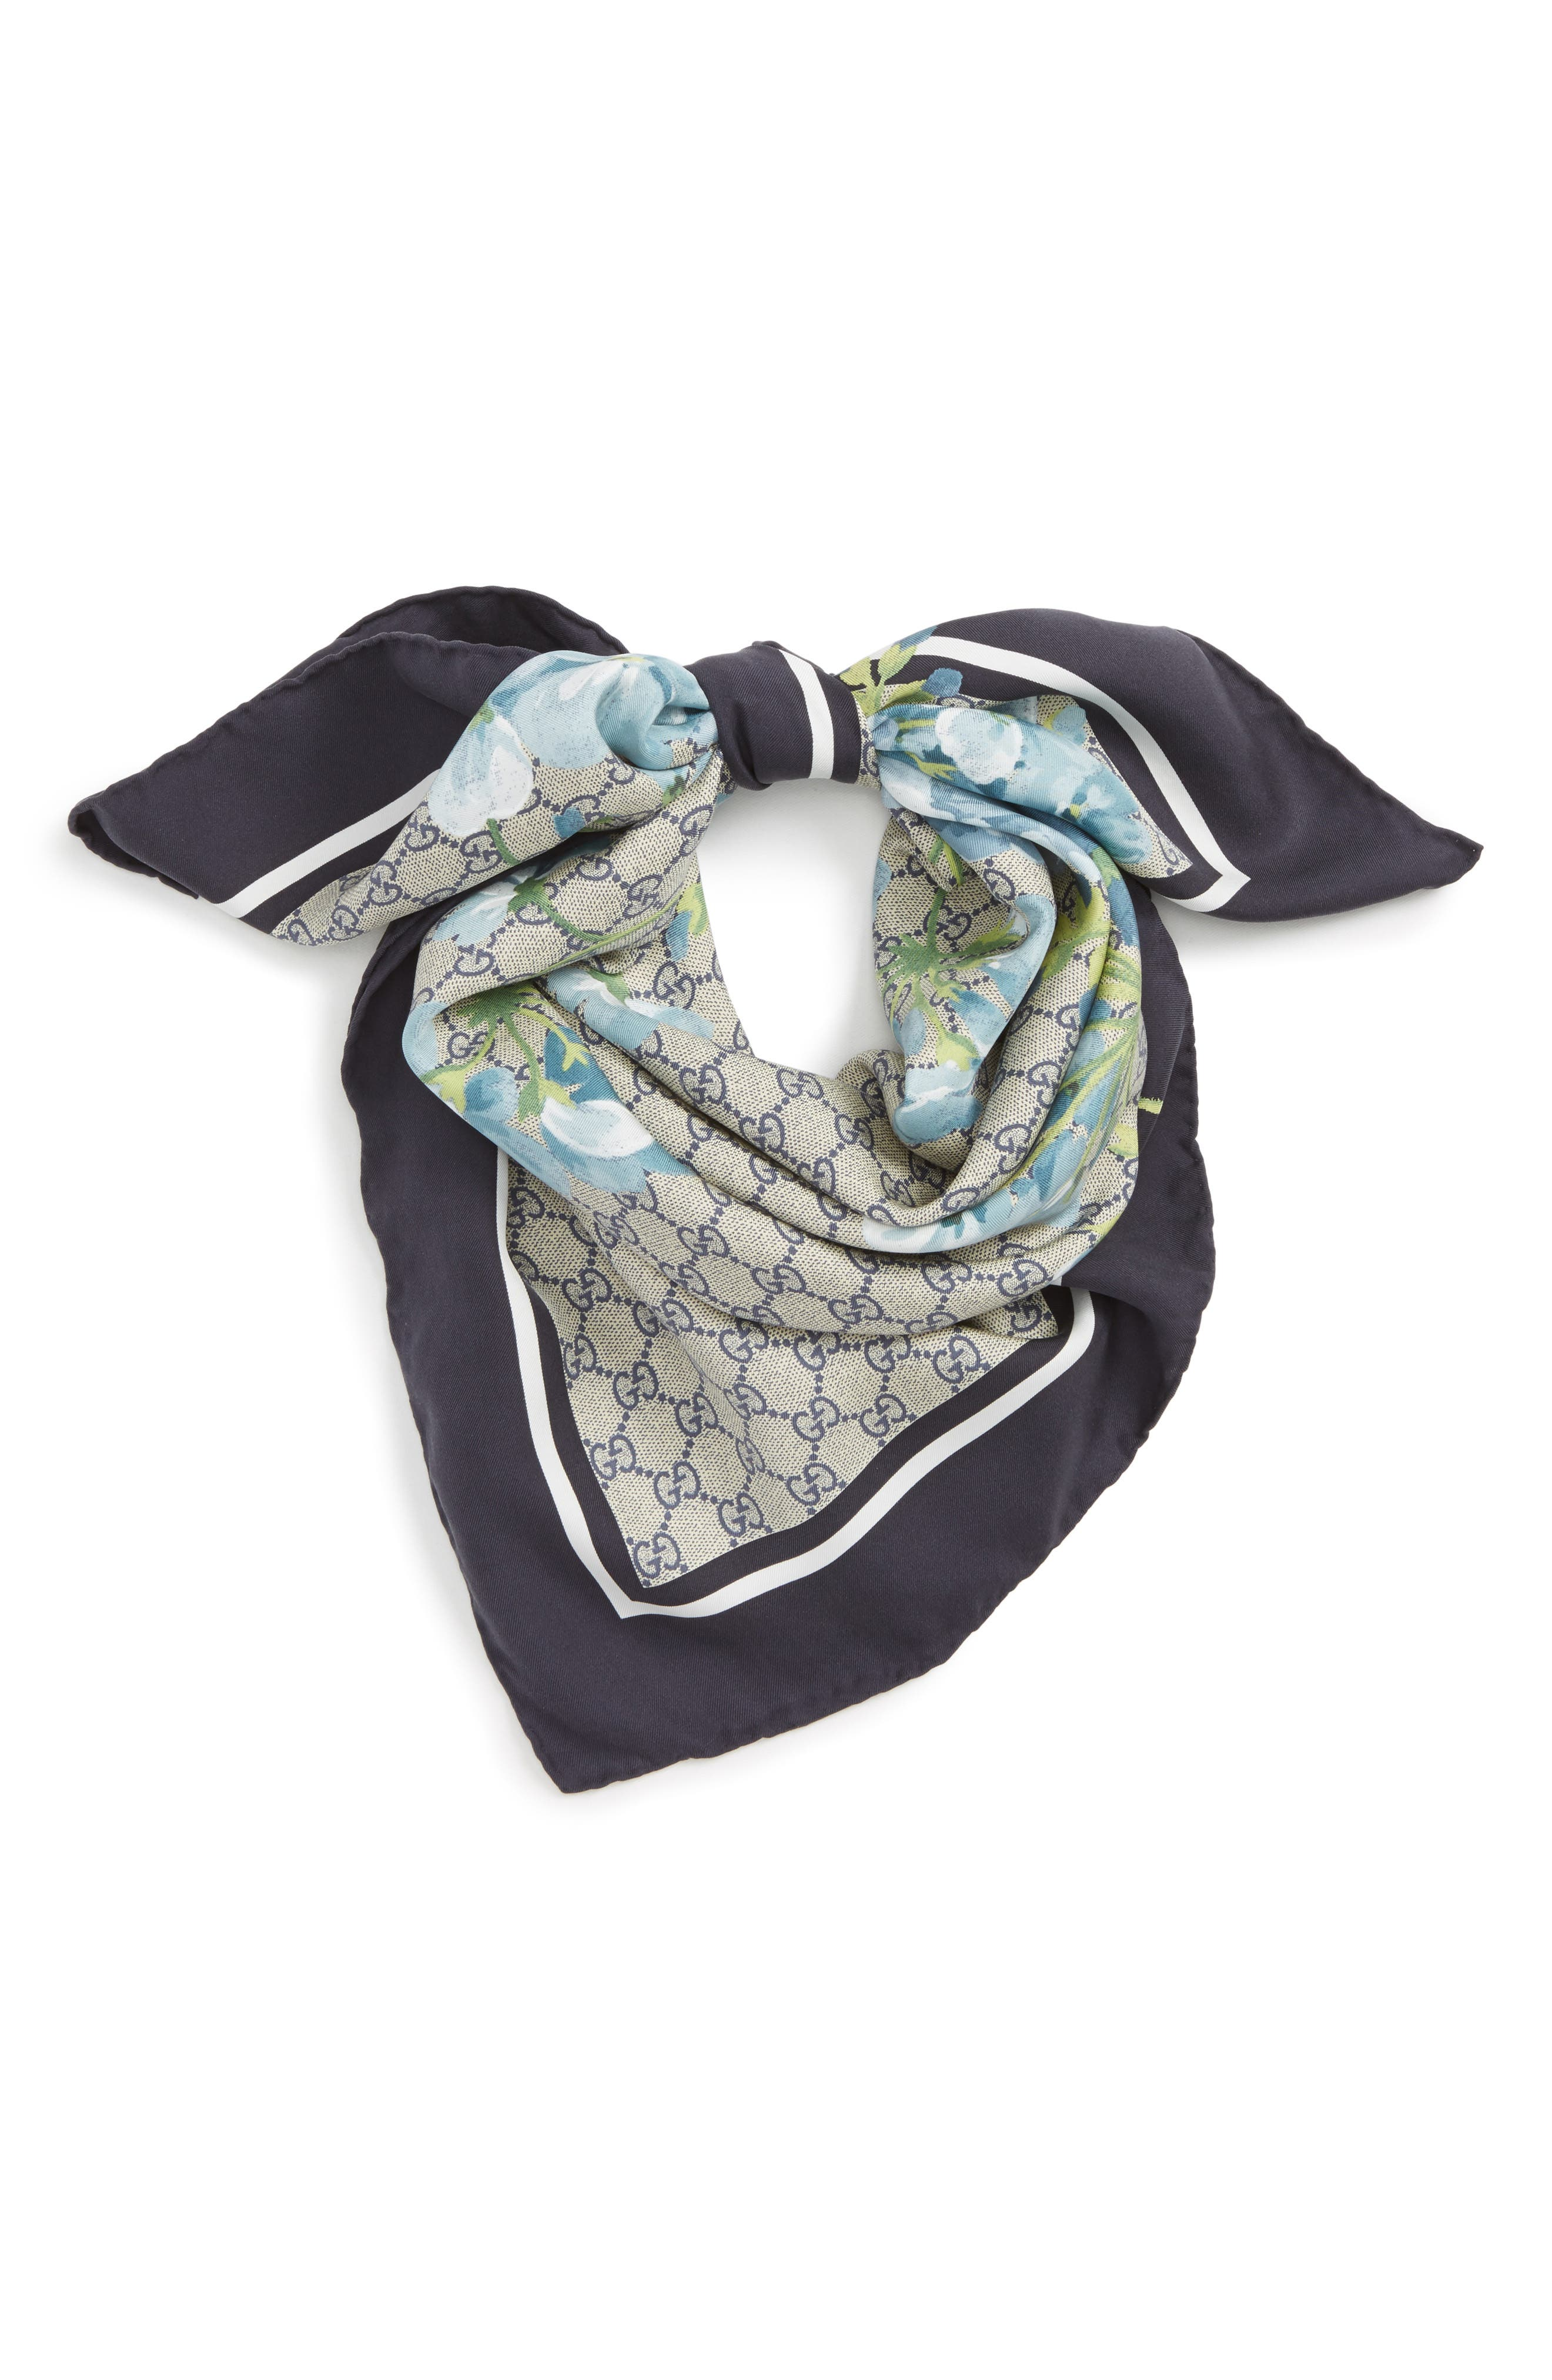 GG Blooms Foulard Scarf,                         Main,                         color, MIDNIGHT BLUE/SKY BLUE